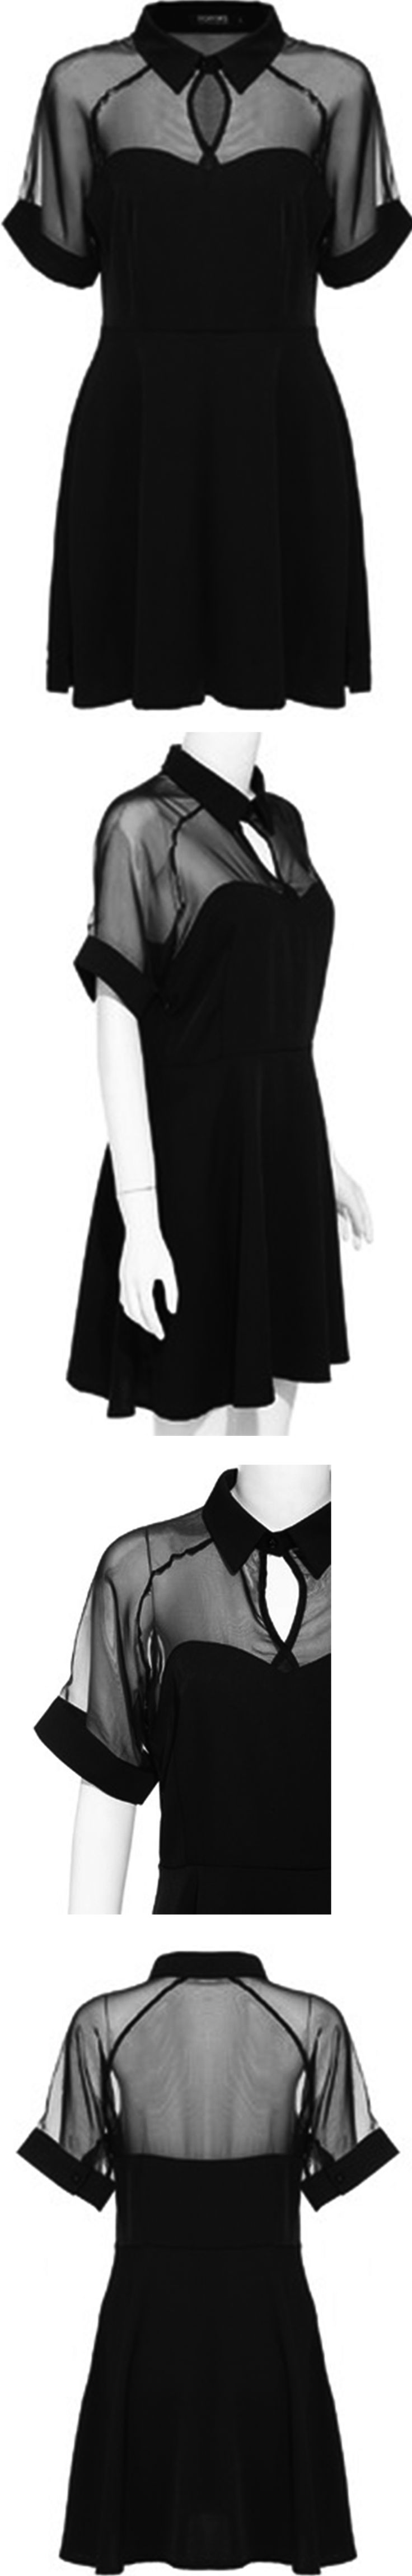 Romwe Little Black Dress, featuring a peak collar and short buttoned sleeves. The unique sweetheart shape will brighten you in any occassion.Click for shopping with 60% off 1st order!